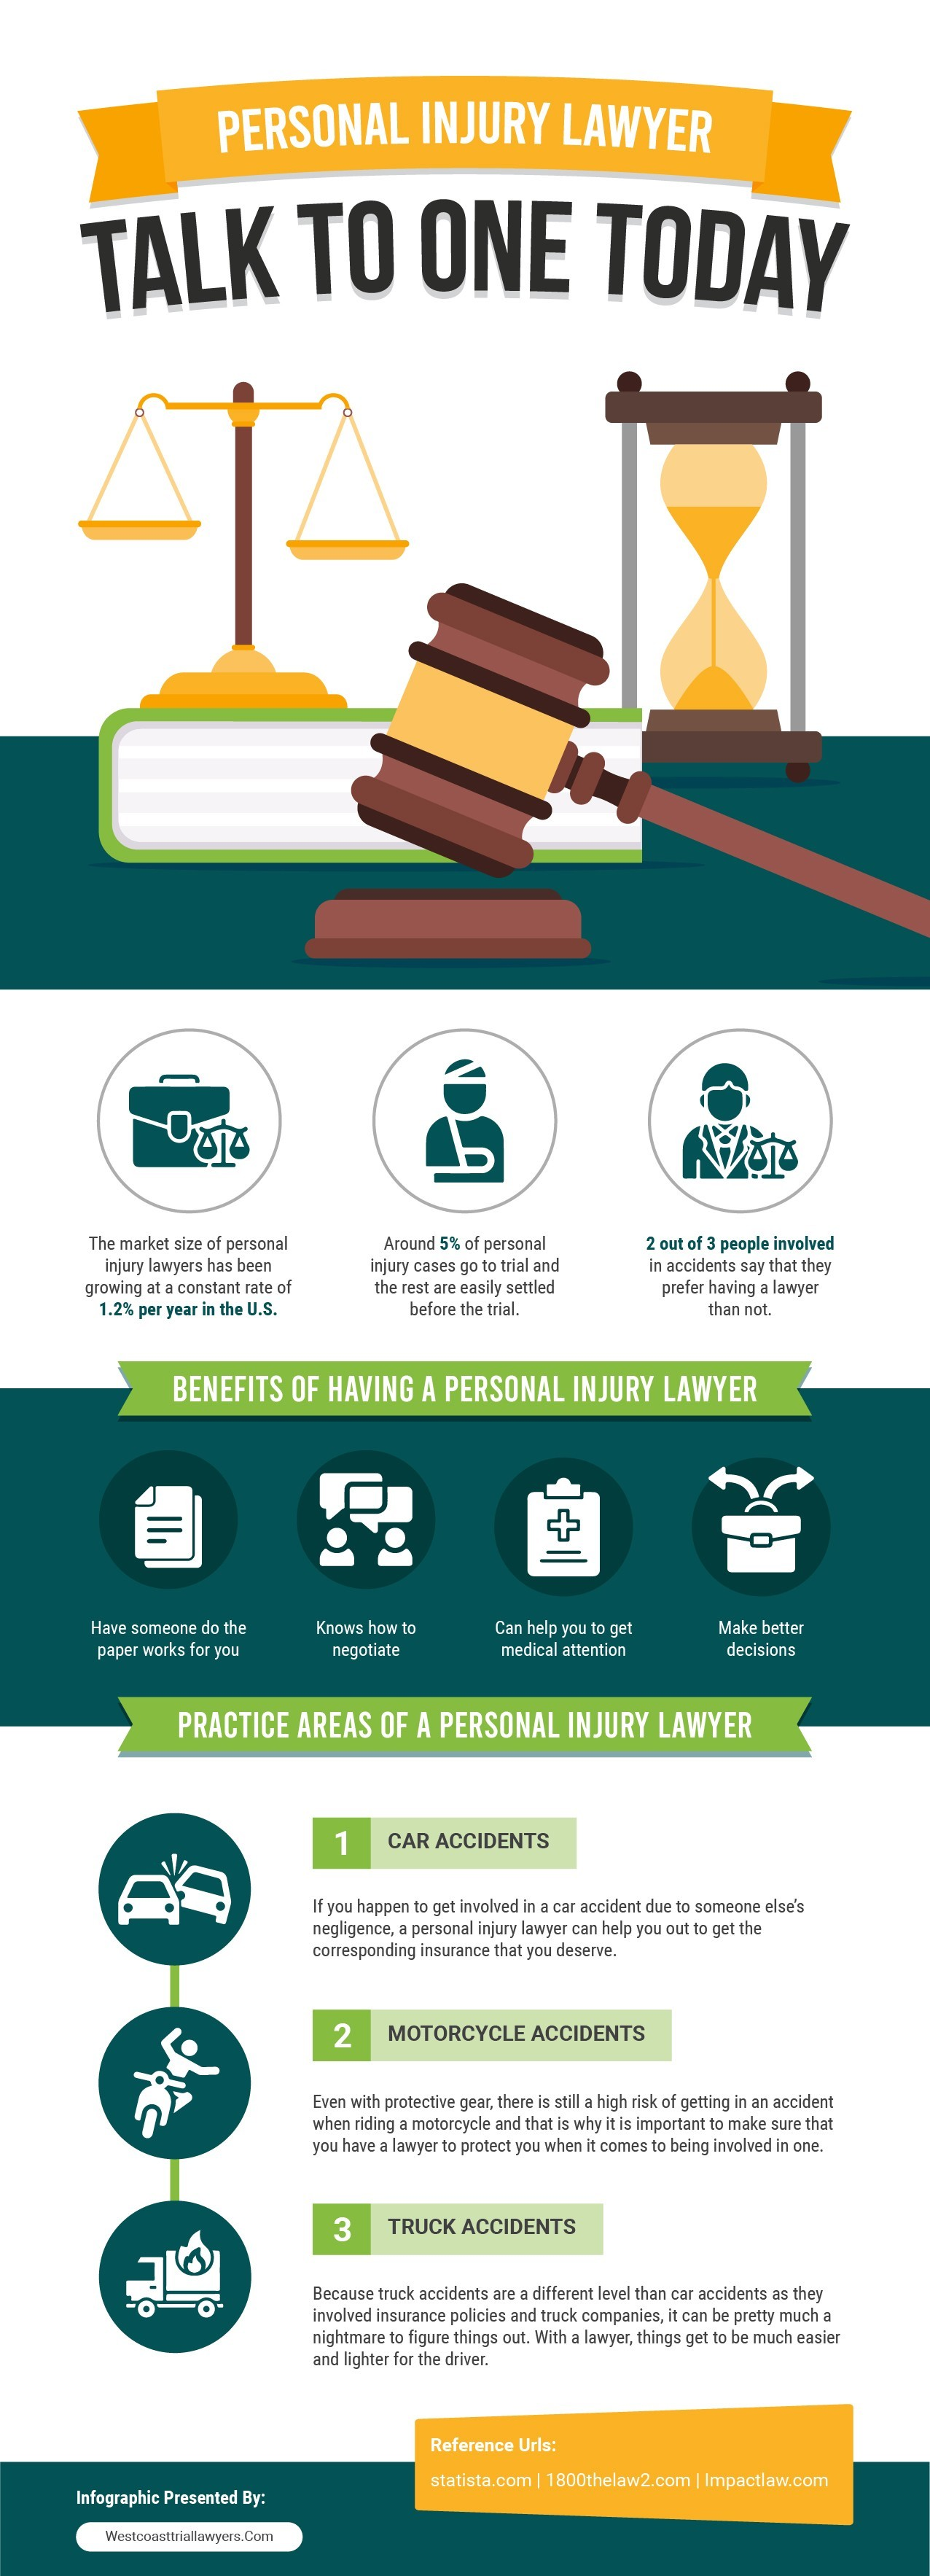 Have Peace Of Mind With The Help Of A Personal Injury Lawyer